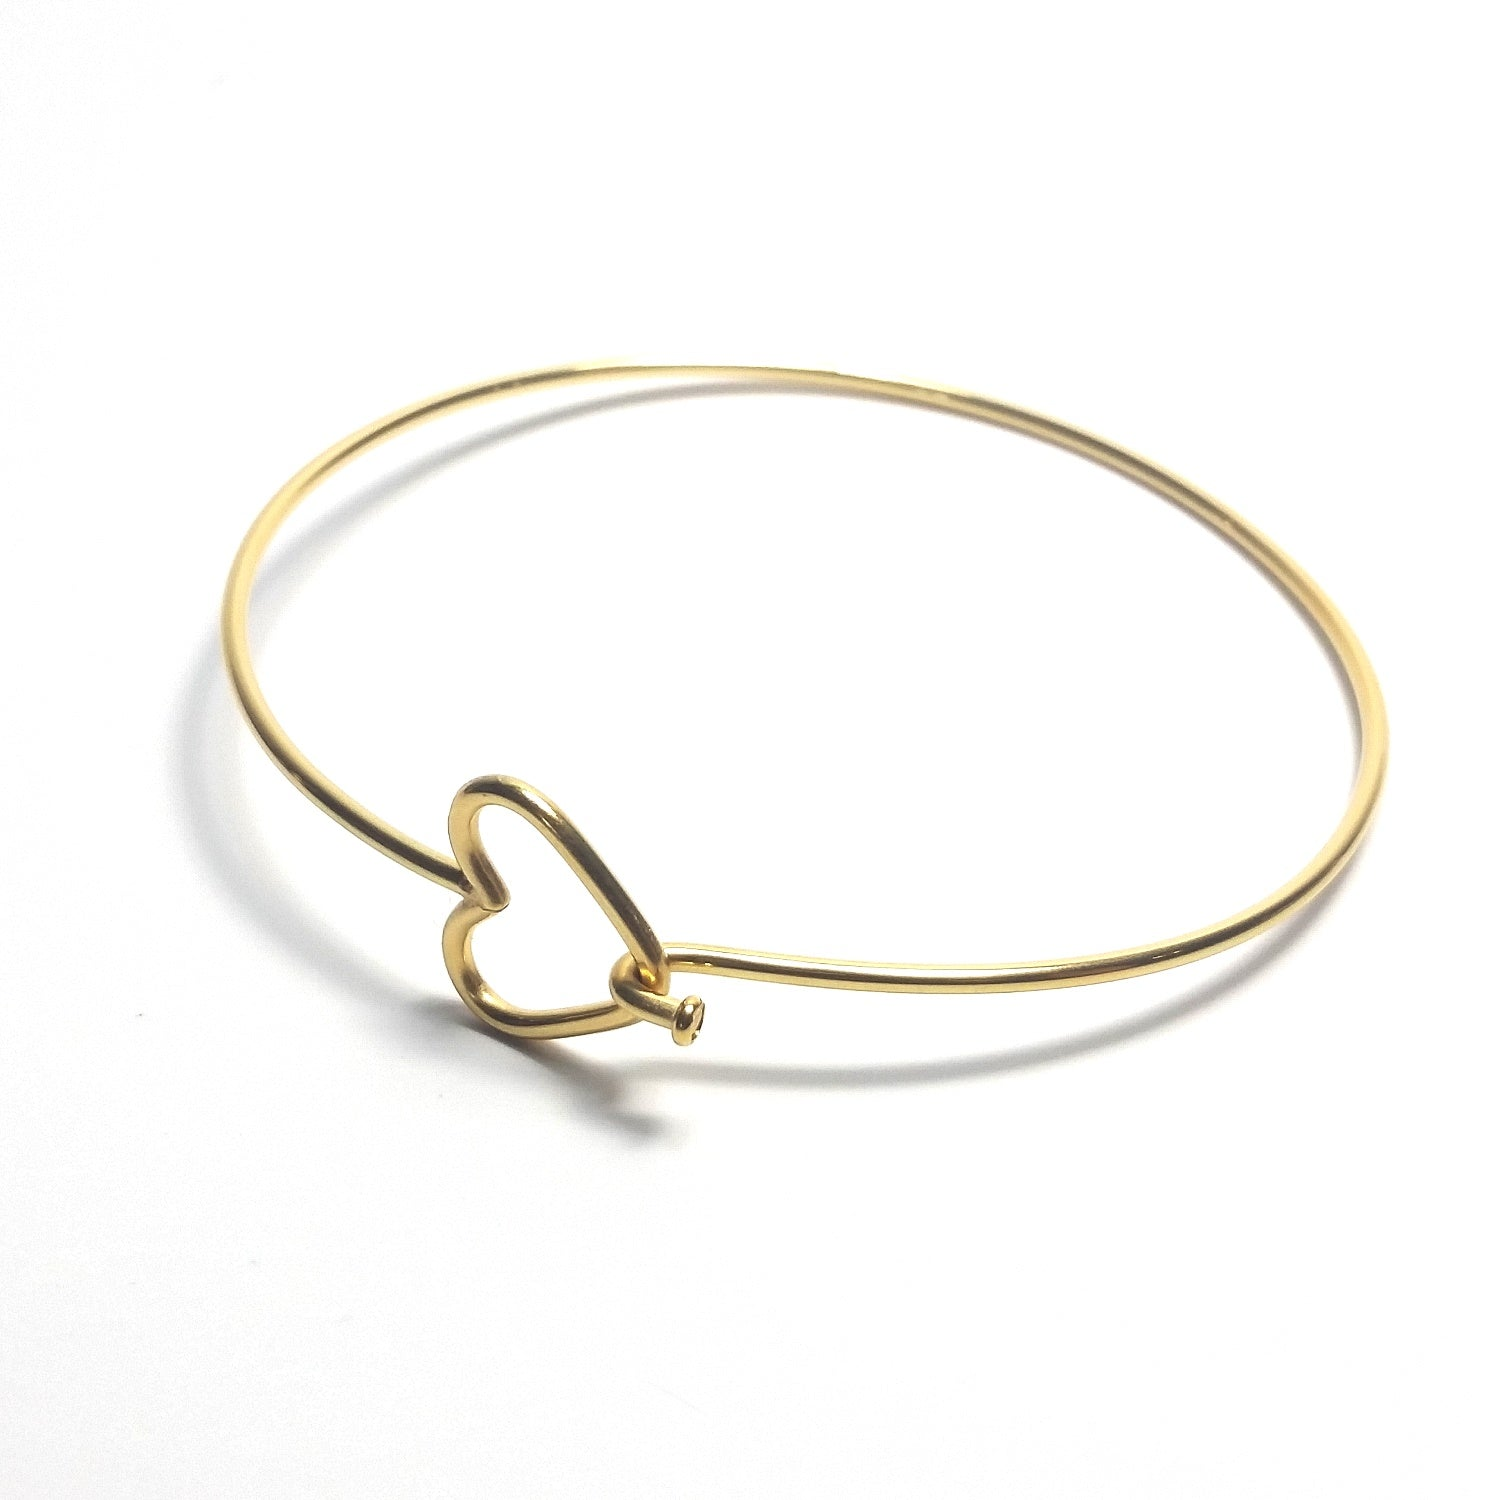 gold forever uk bangle baby karat bracelets category product carat jewellery bangles